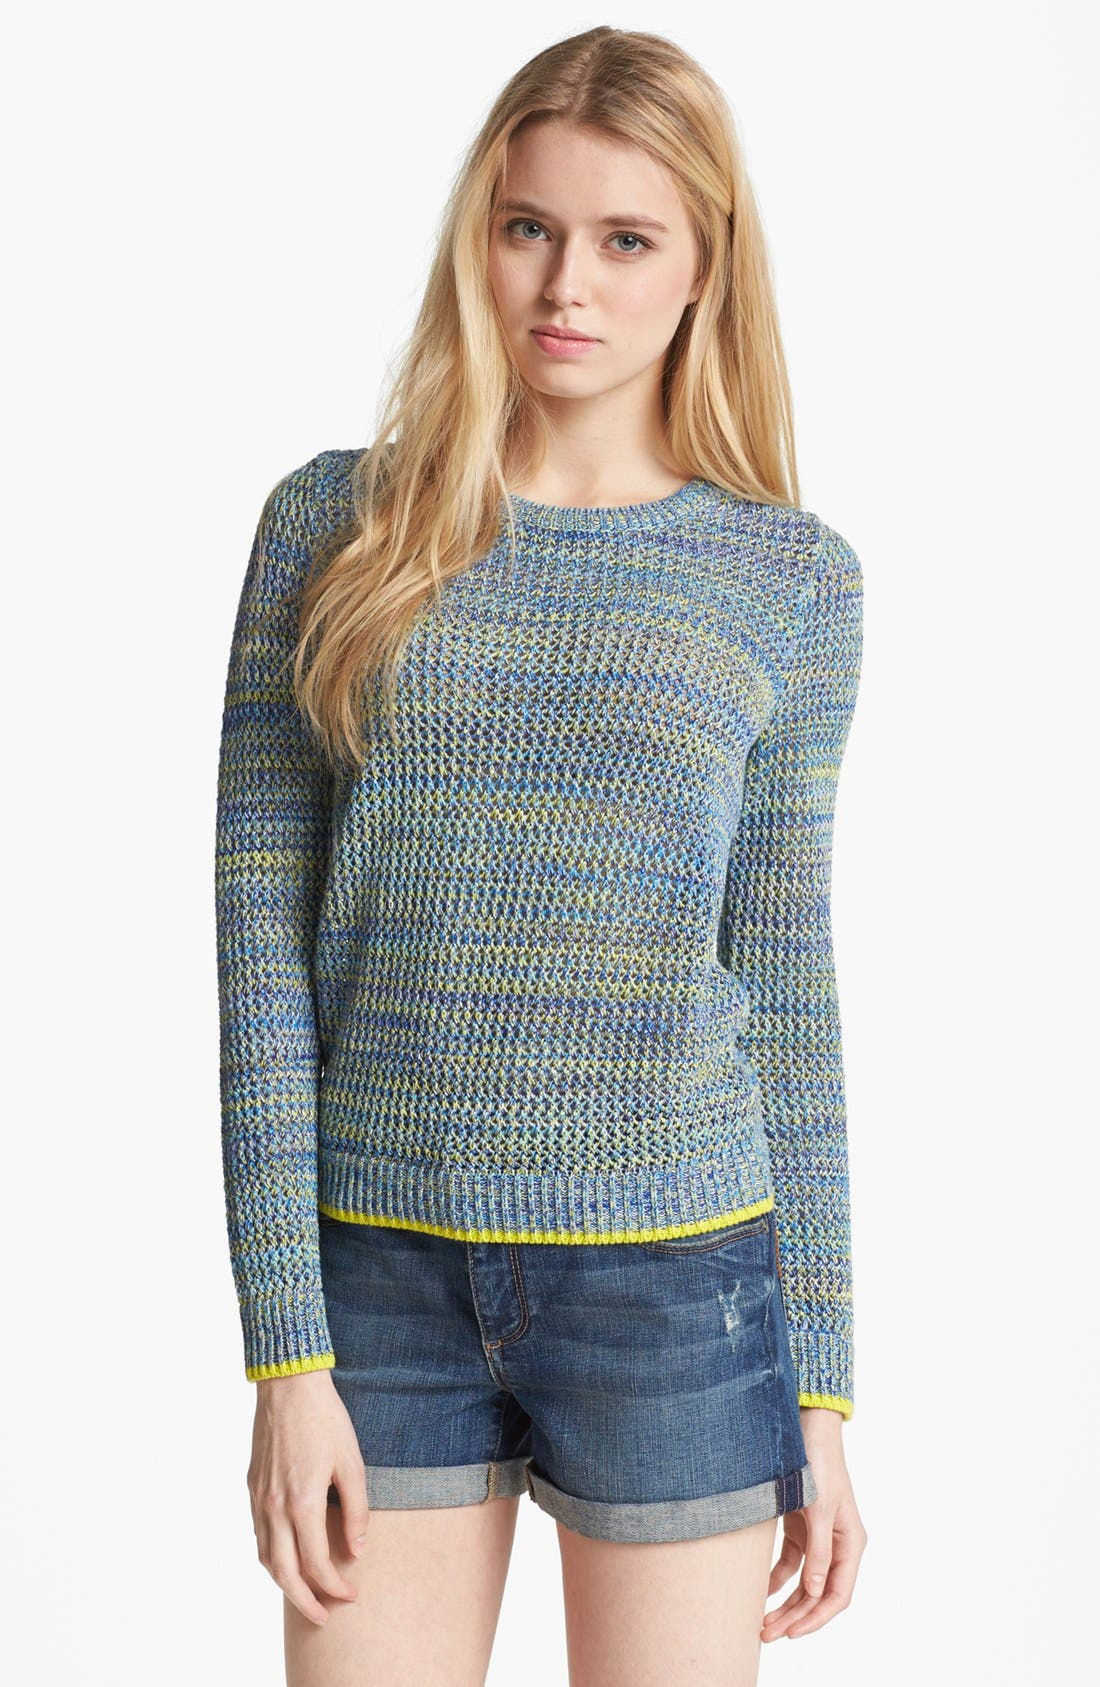 Alternate Image 1 Selected - Joie 'Carlee' Cotton Sweater